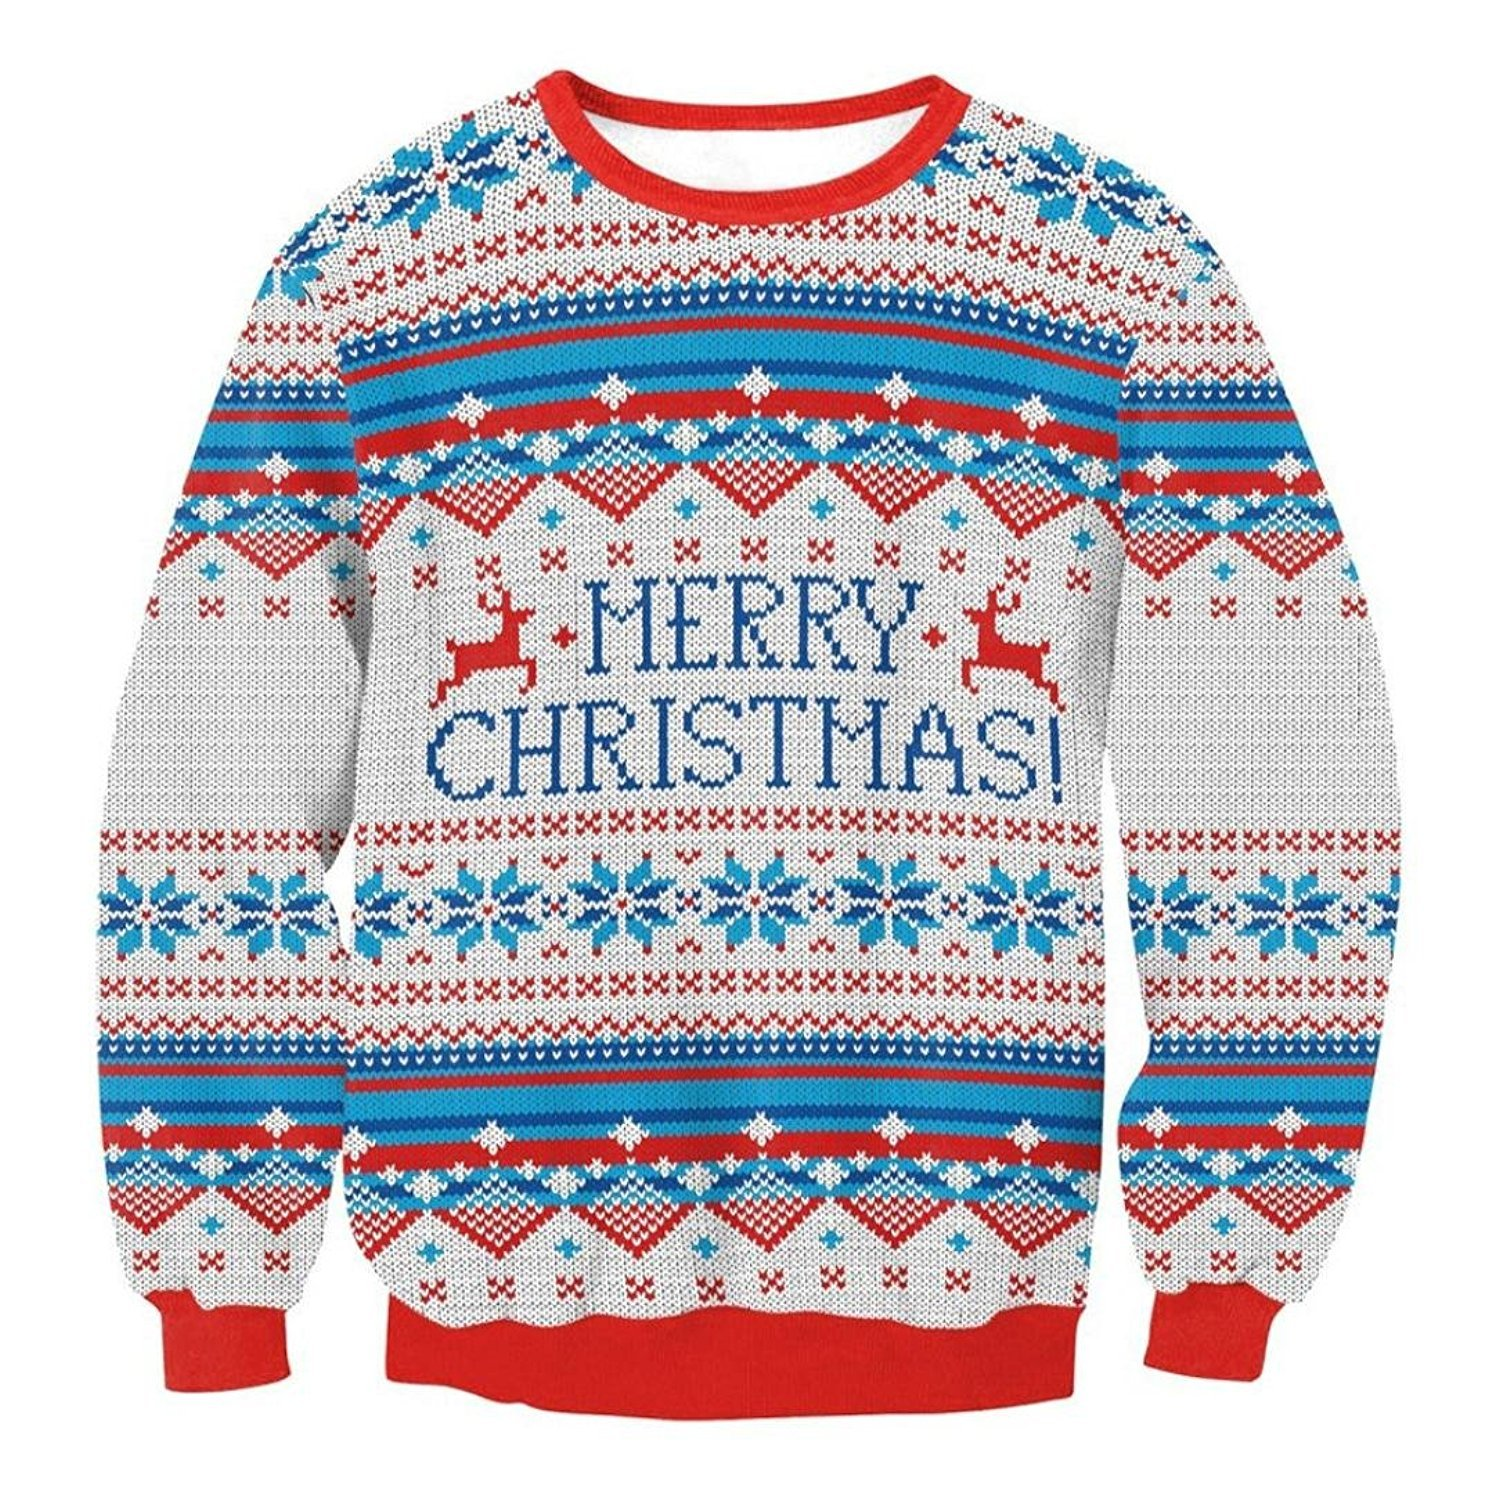 Christmas Jumpers For Women Men Mingfa Loose Letter Print Merry Christmas Floral Sweatshirt Pullover Tops Blouse